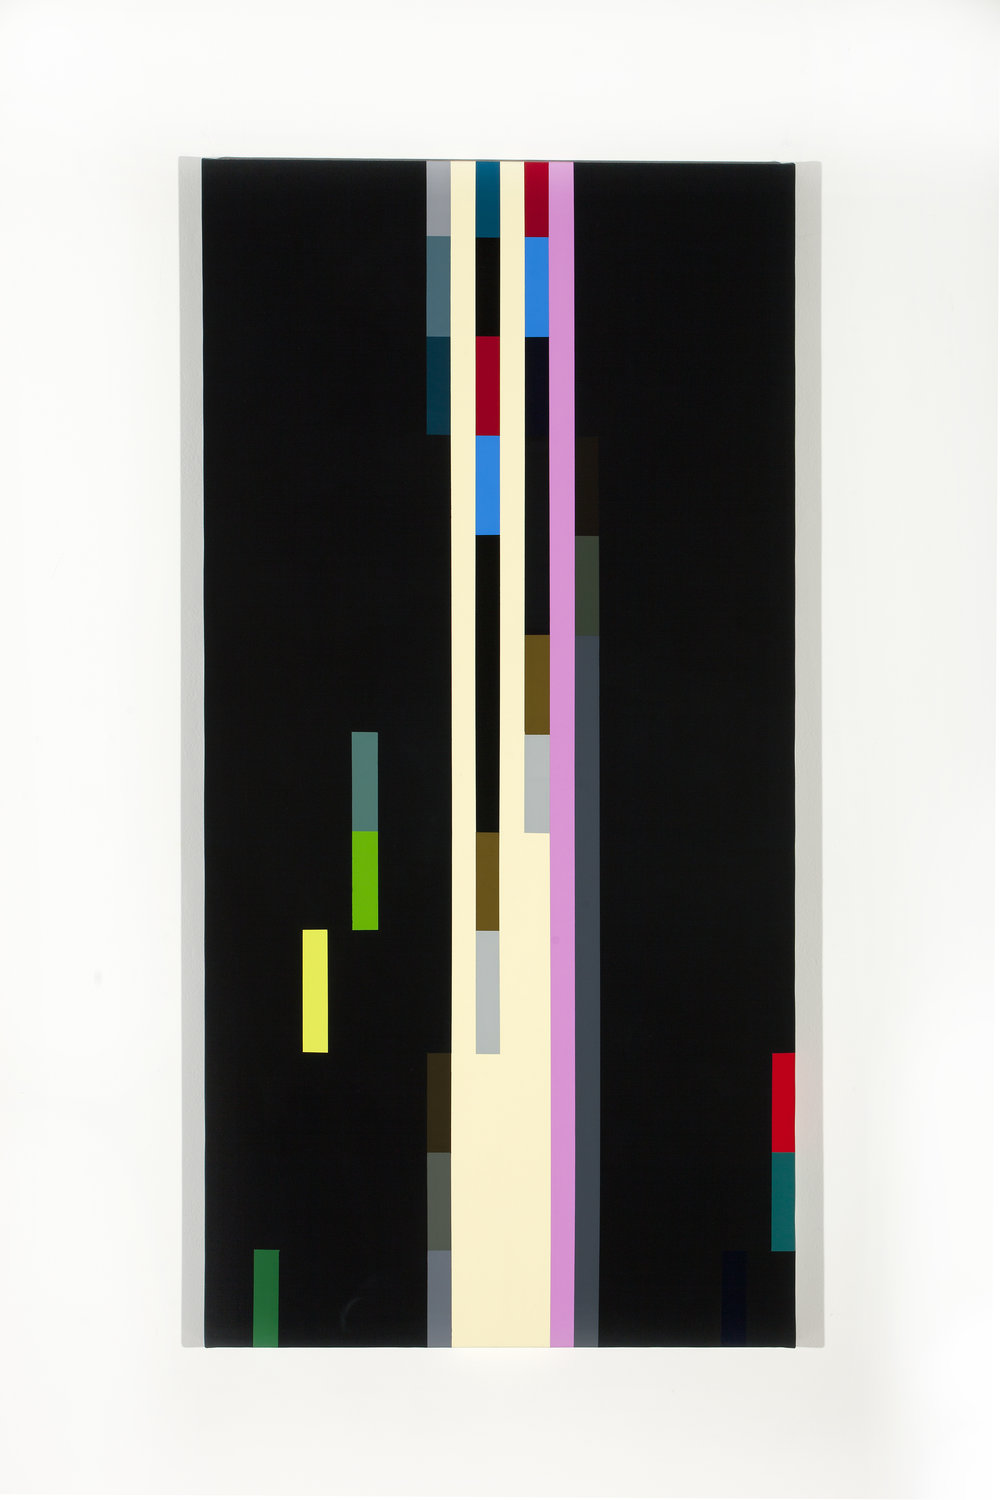 Robert Owen,  Soundings, (composition #04)  2012 synthetic polymer paint on canvas, 62.5 x 125 cm.